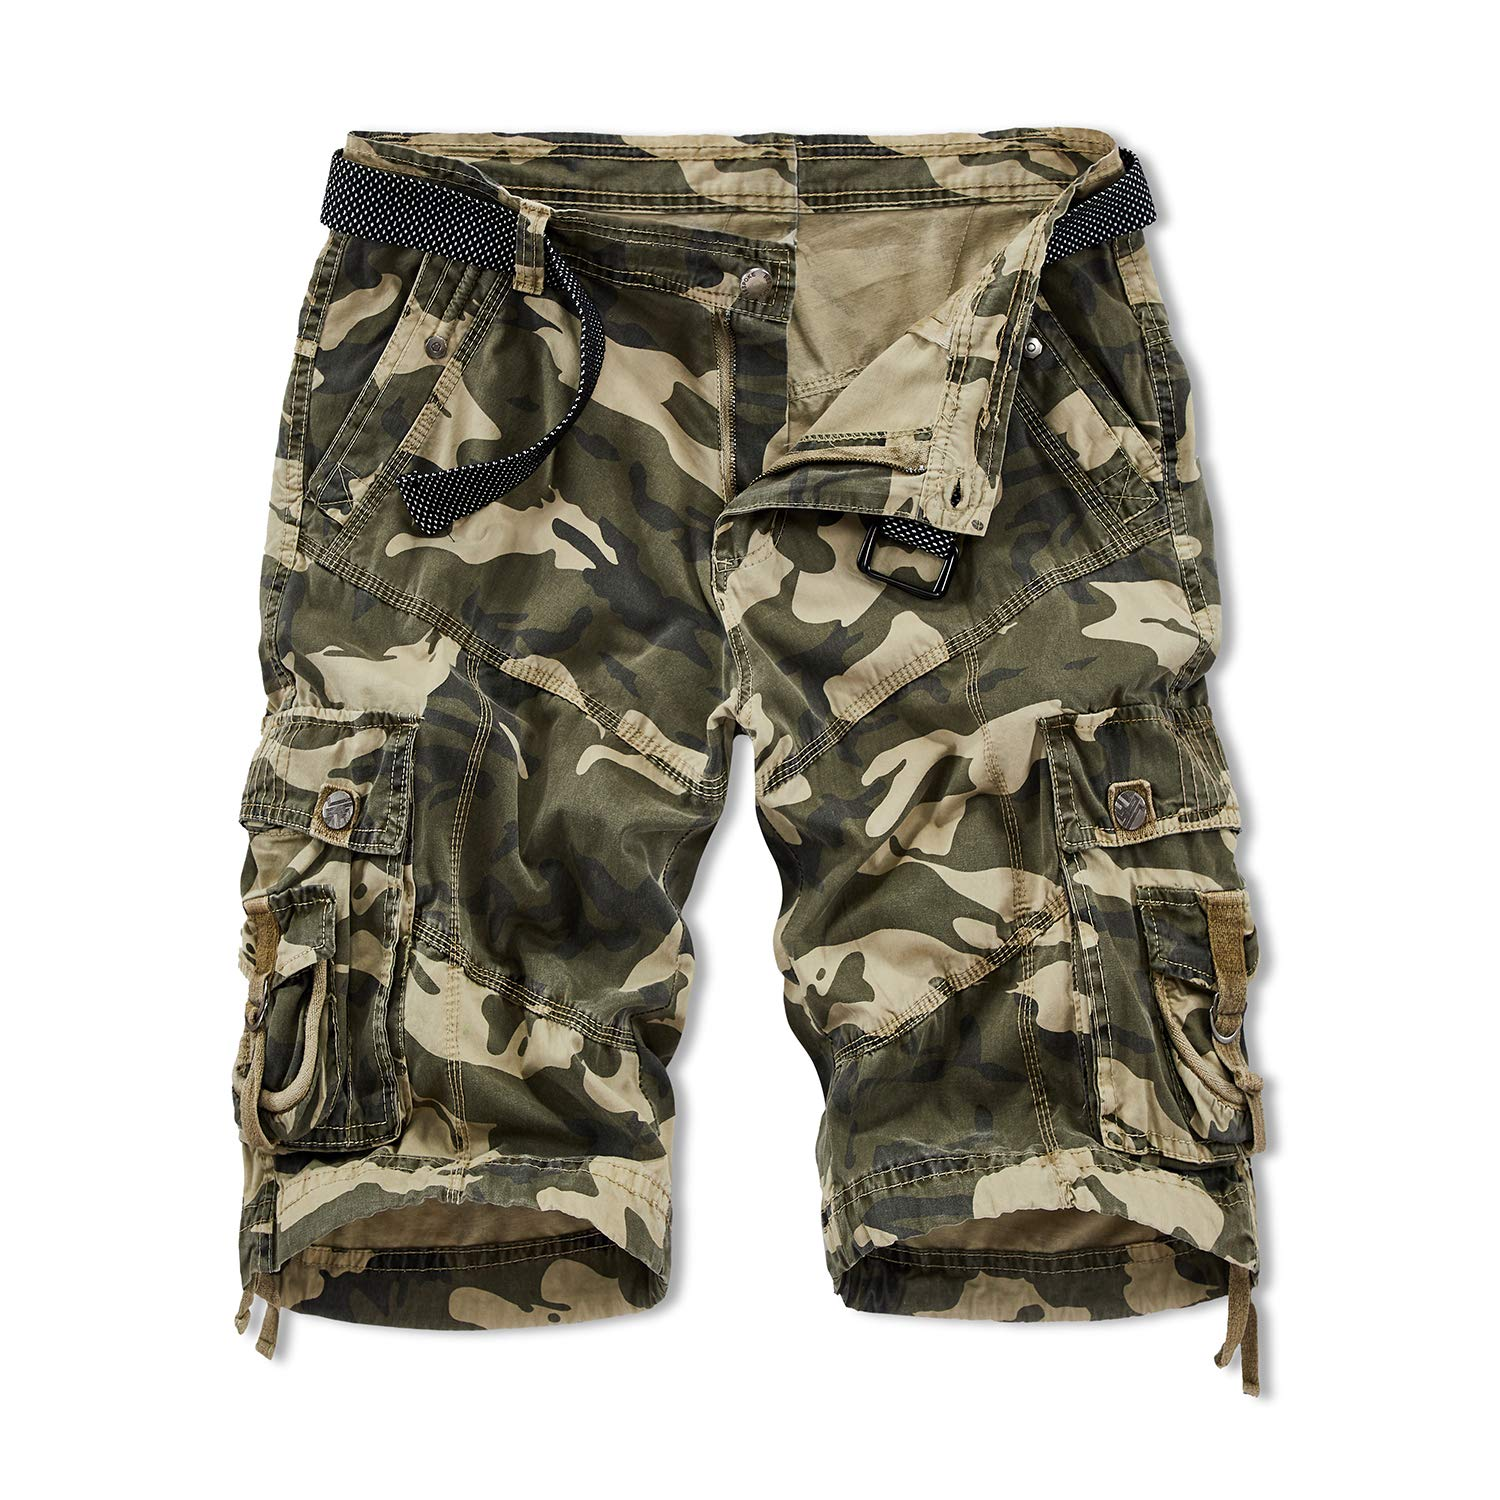 XIONG TAI Mens Cargo Shorts Relaxed Fit Multi-Pocket Outdoor Camo Cargo Shorts Including Belt